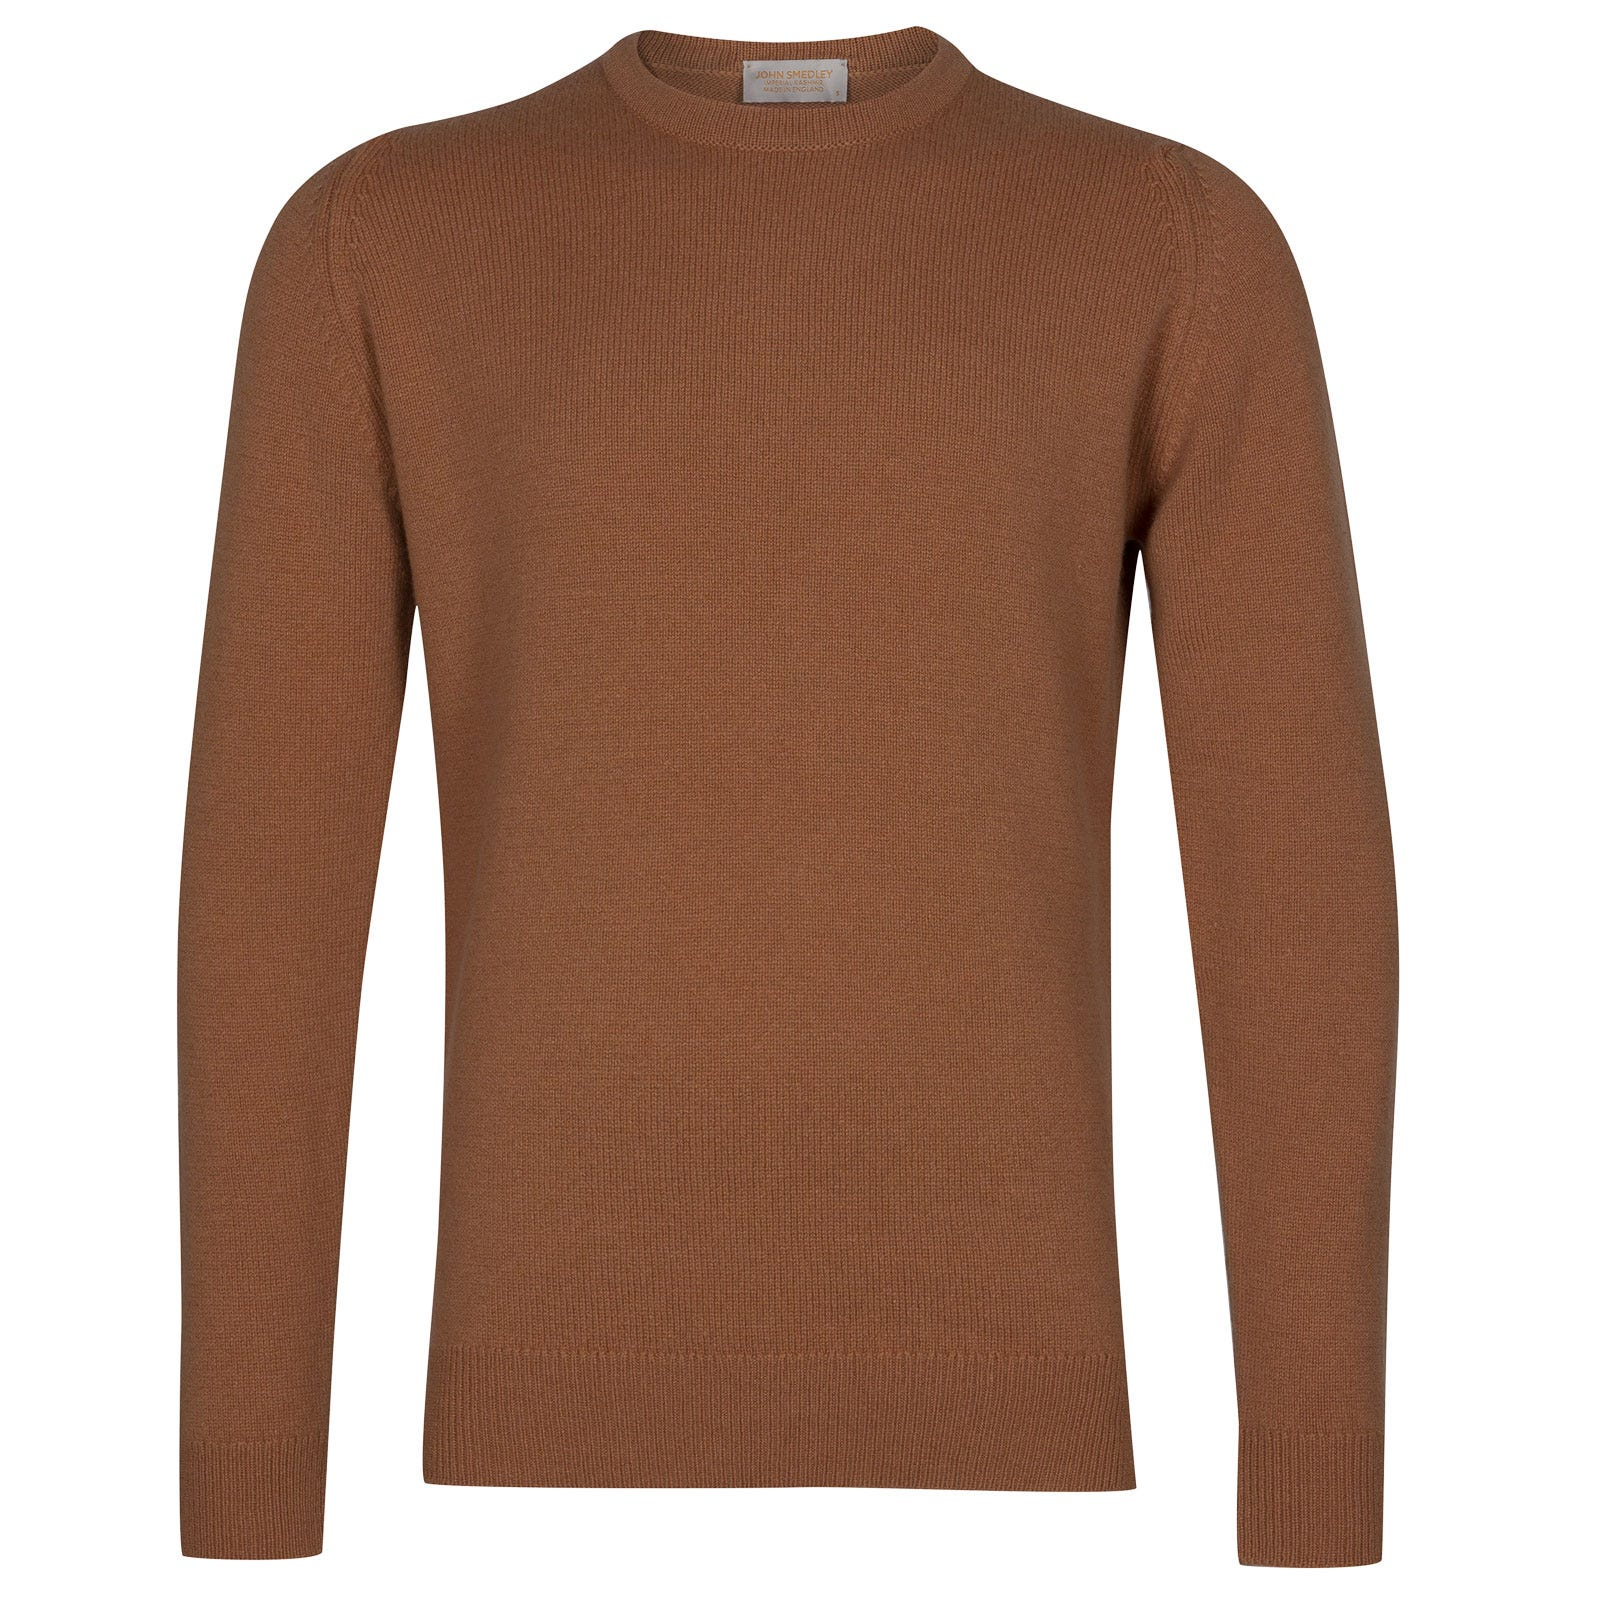 John Smedley Crowford Wool and Cashmere Pullover in Camel-XL